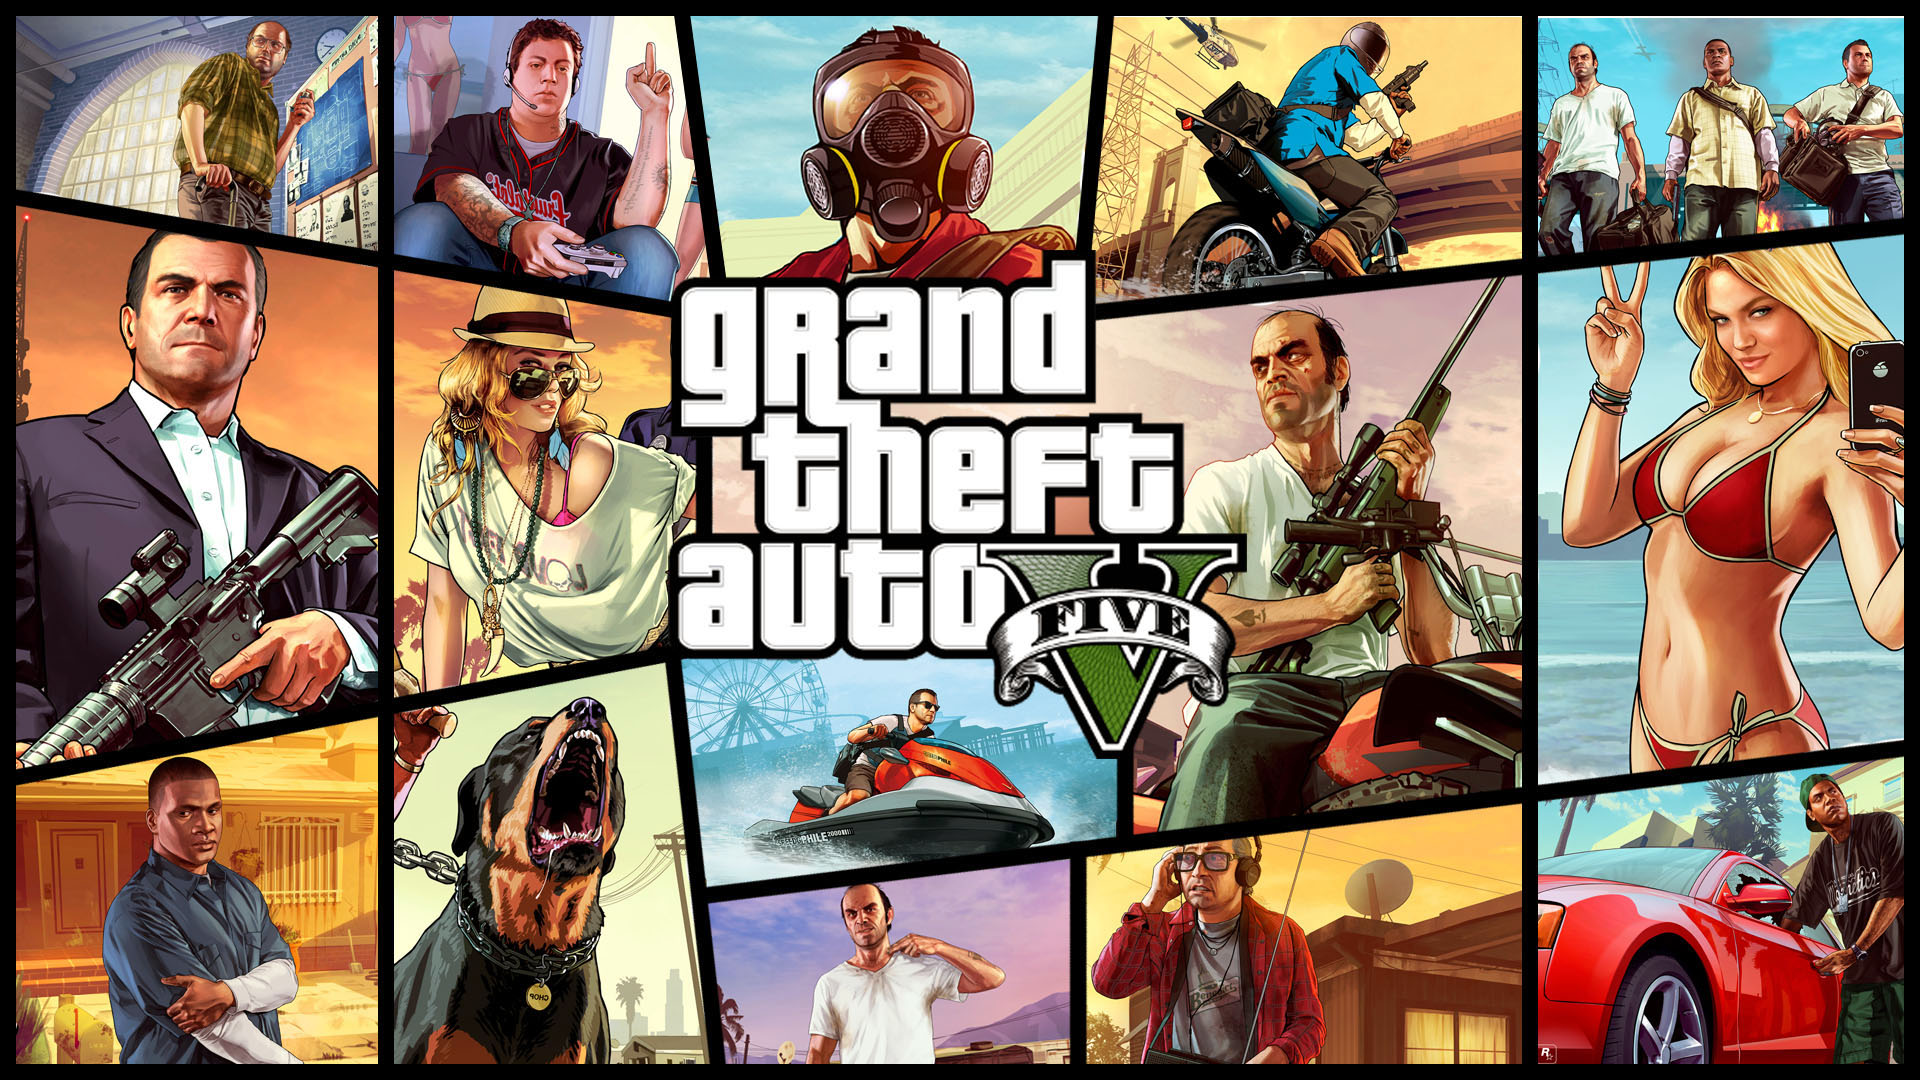 Download image gta5 pc android iphone and ipad wallpapers and - Download Grand Theft Auto 5 Gta 5 For Ipad Untested Gta 5 Hack For Iphone